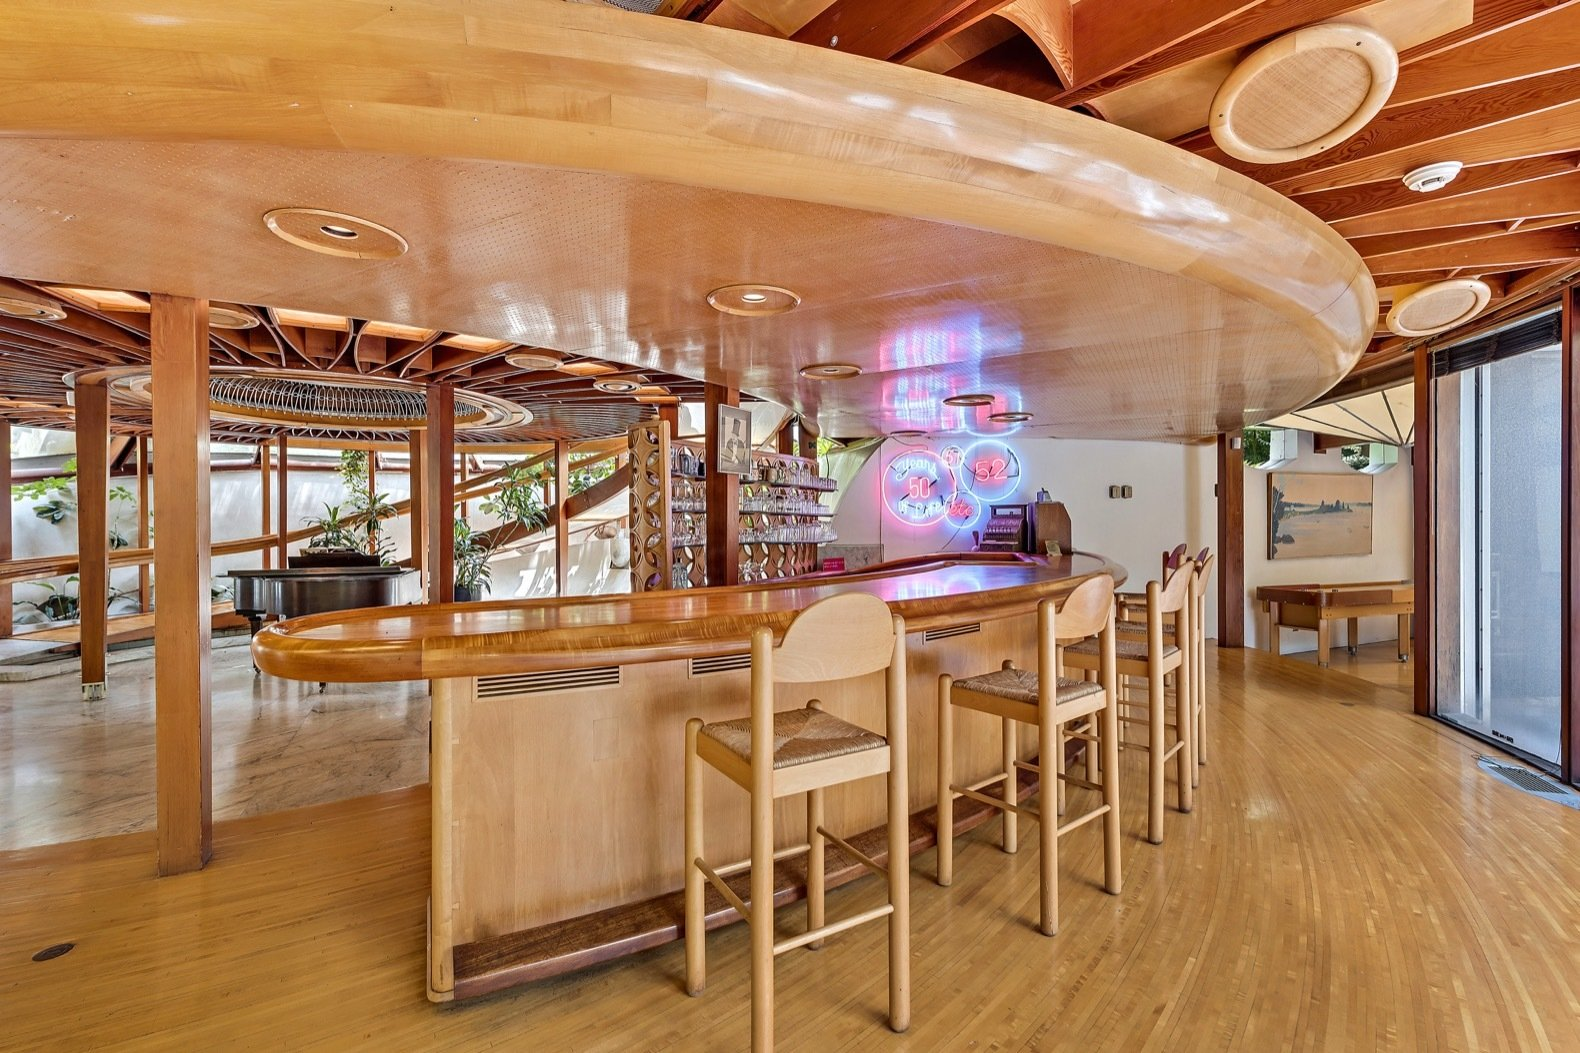 Living, Medium Hardwood, Recessed, Bar, and Stools The property includes four bars—one of which seats 13 people.    Living Medium Hardwood Recessed Bar Photos from Jackie Gleason's Spaceship-Like Mansion Hits the Market For $12M